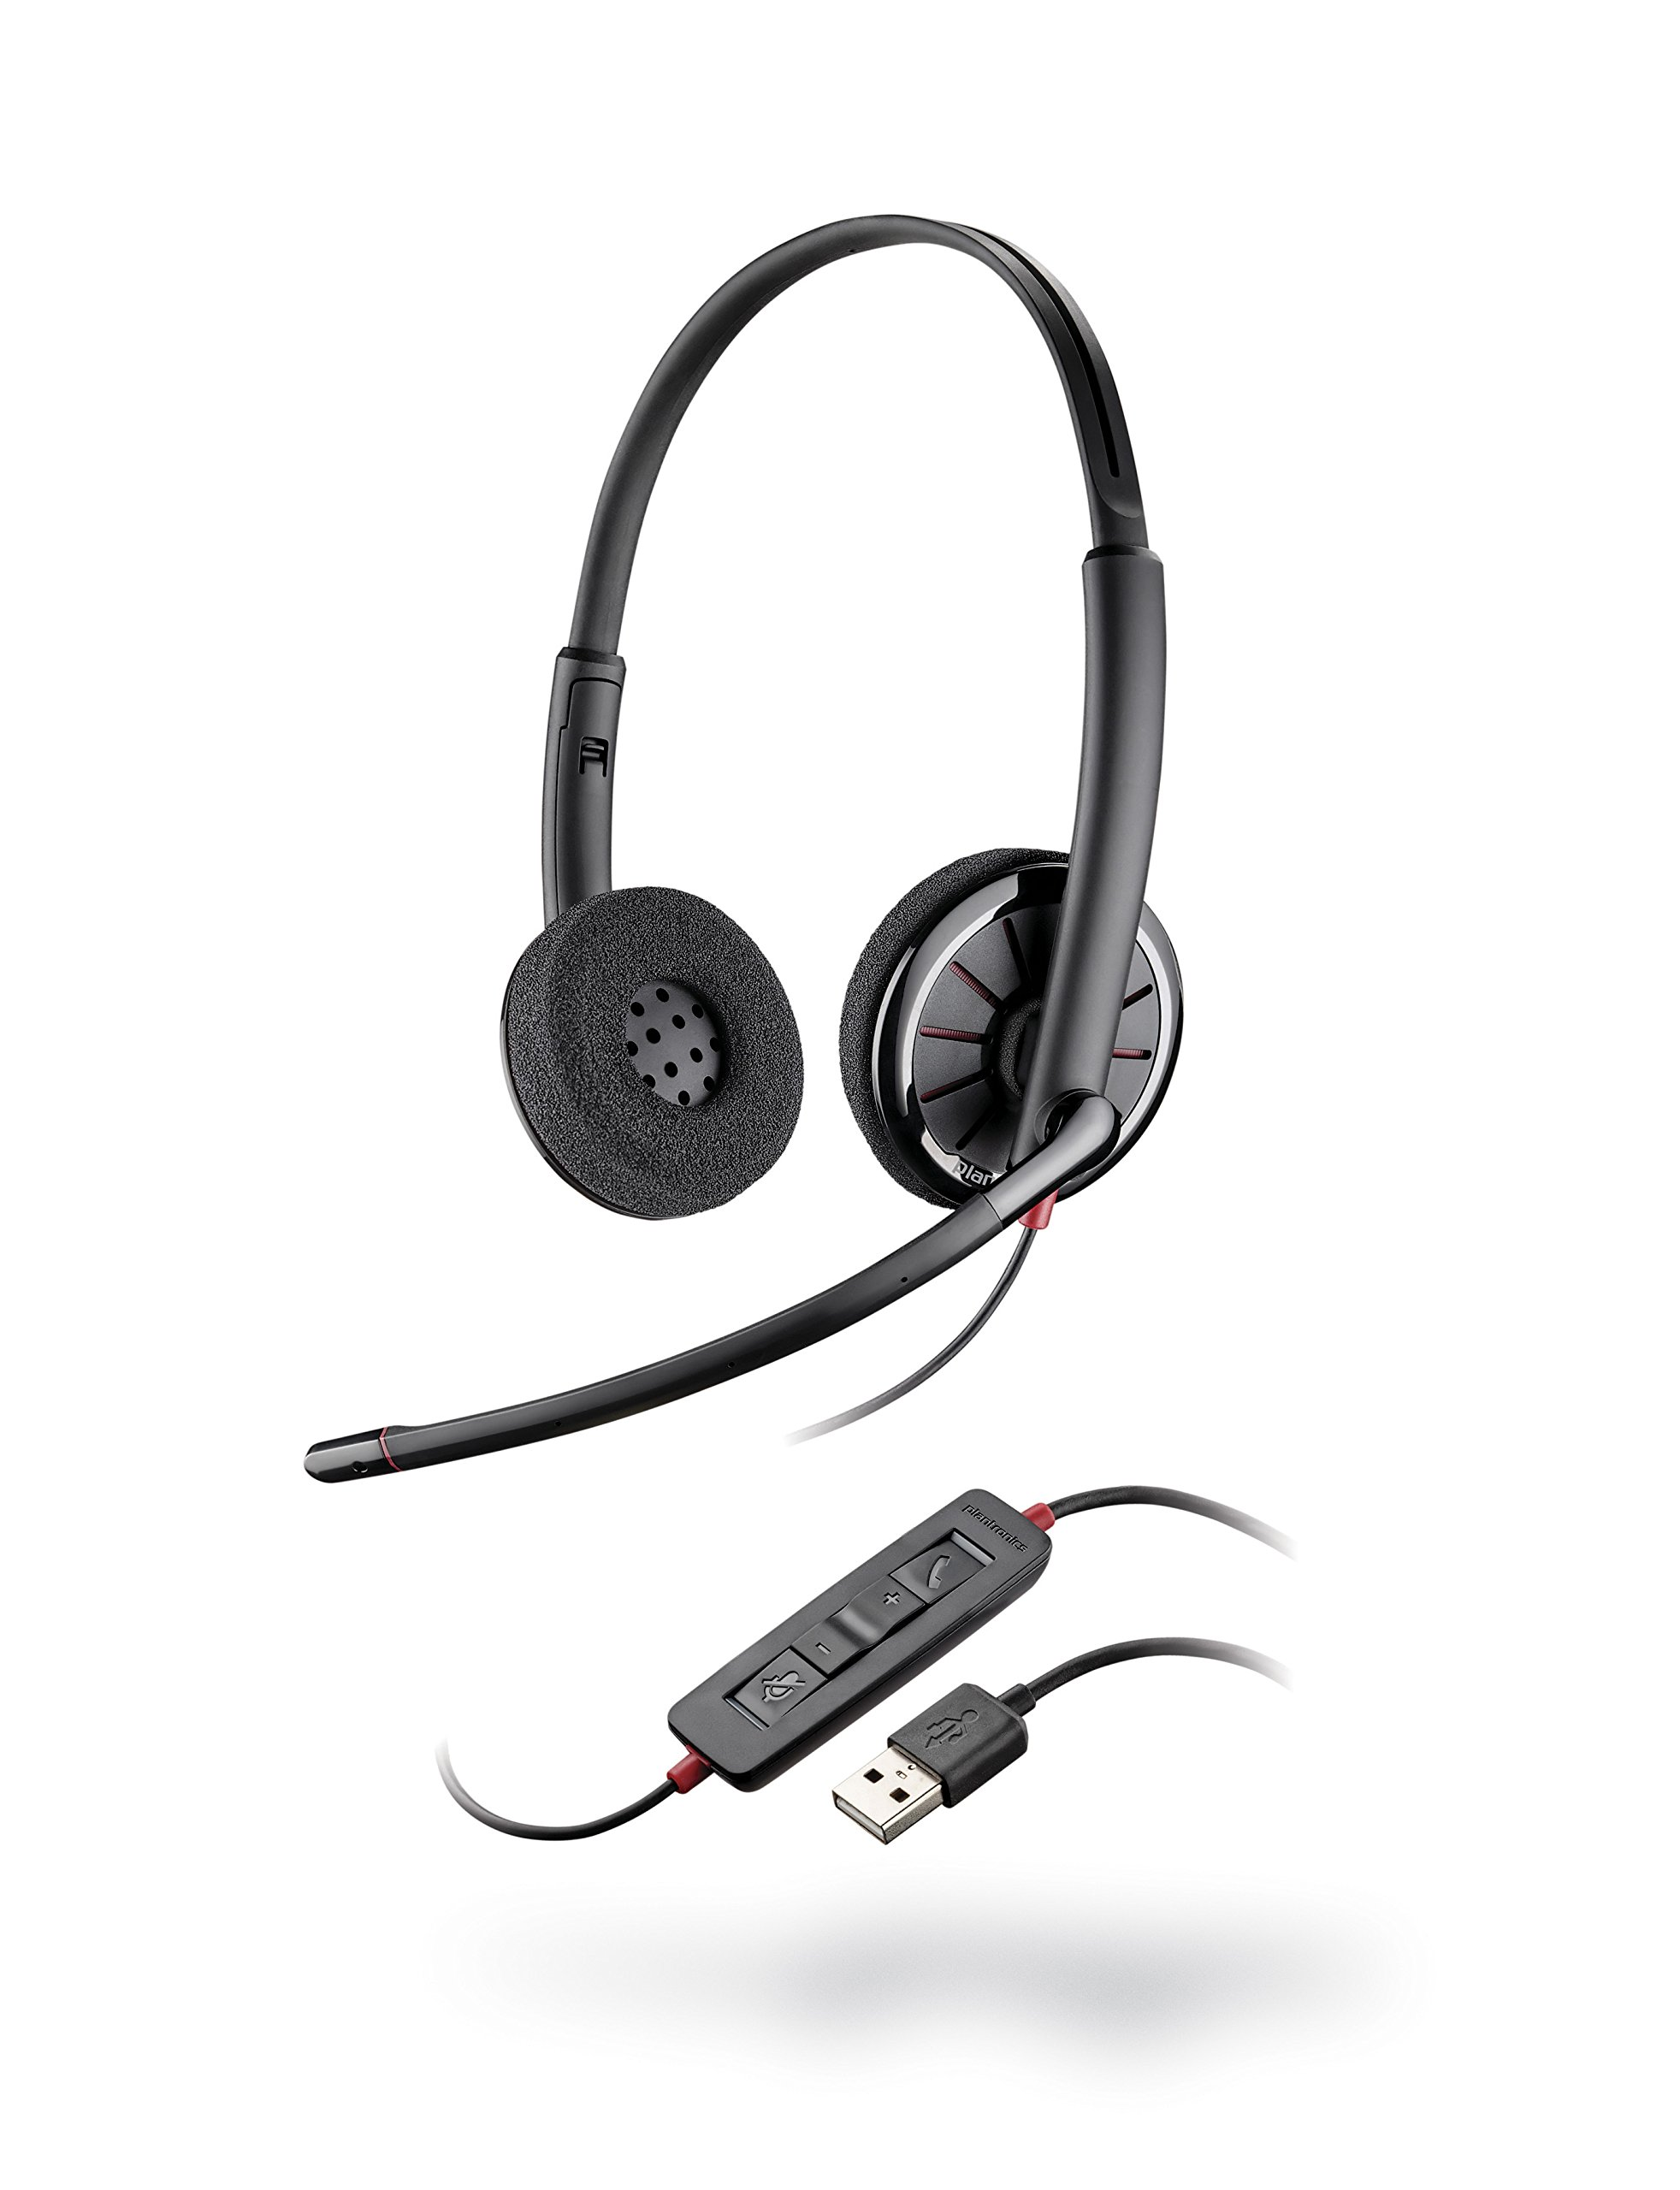 Plantronics 85619-101 Black Wire C320,M, Wired Headset, On- Ear, Gray